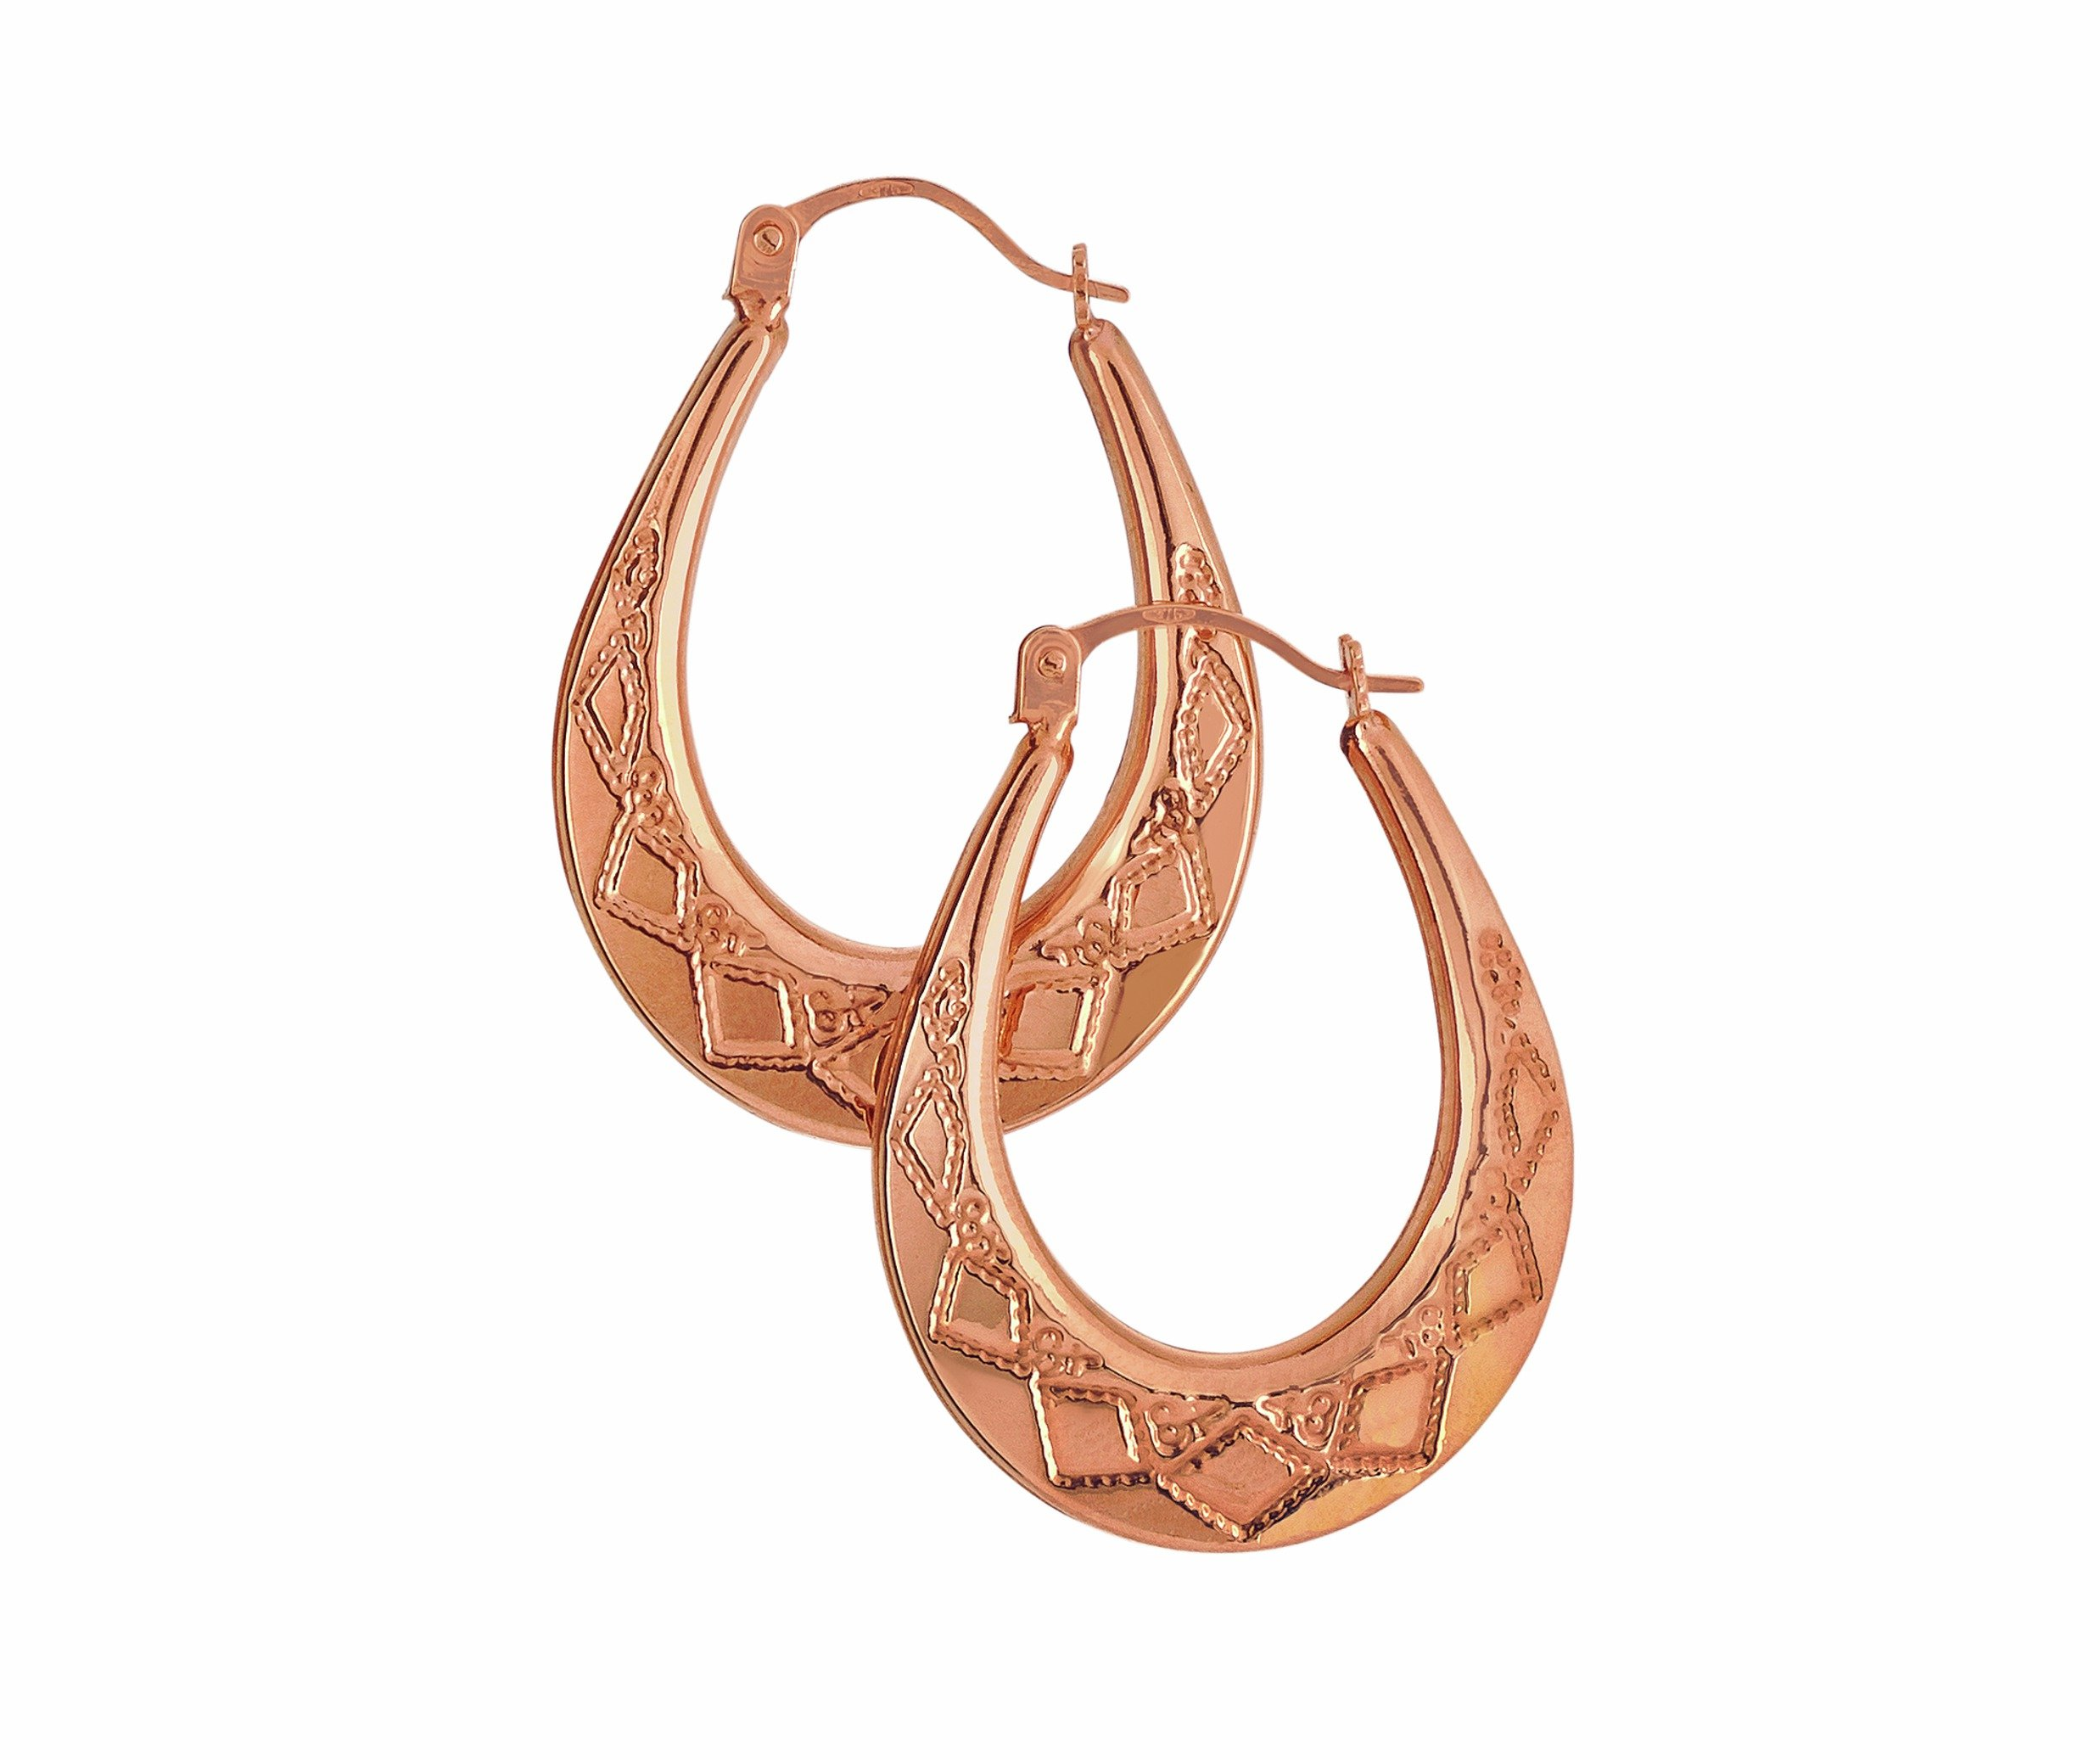 9 Carat Rose Gold - Faceted Oval Creole Earrings.